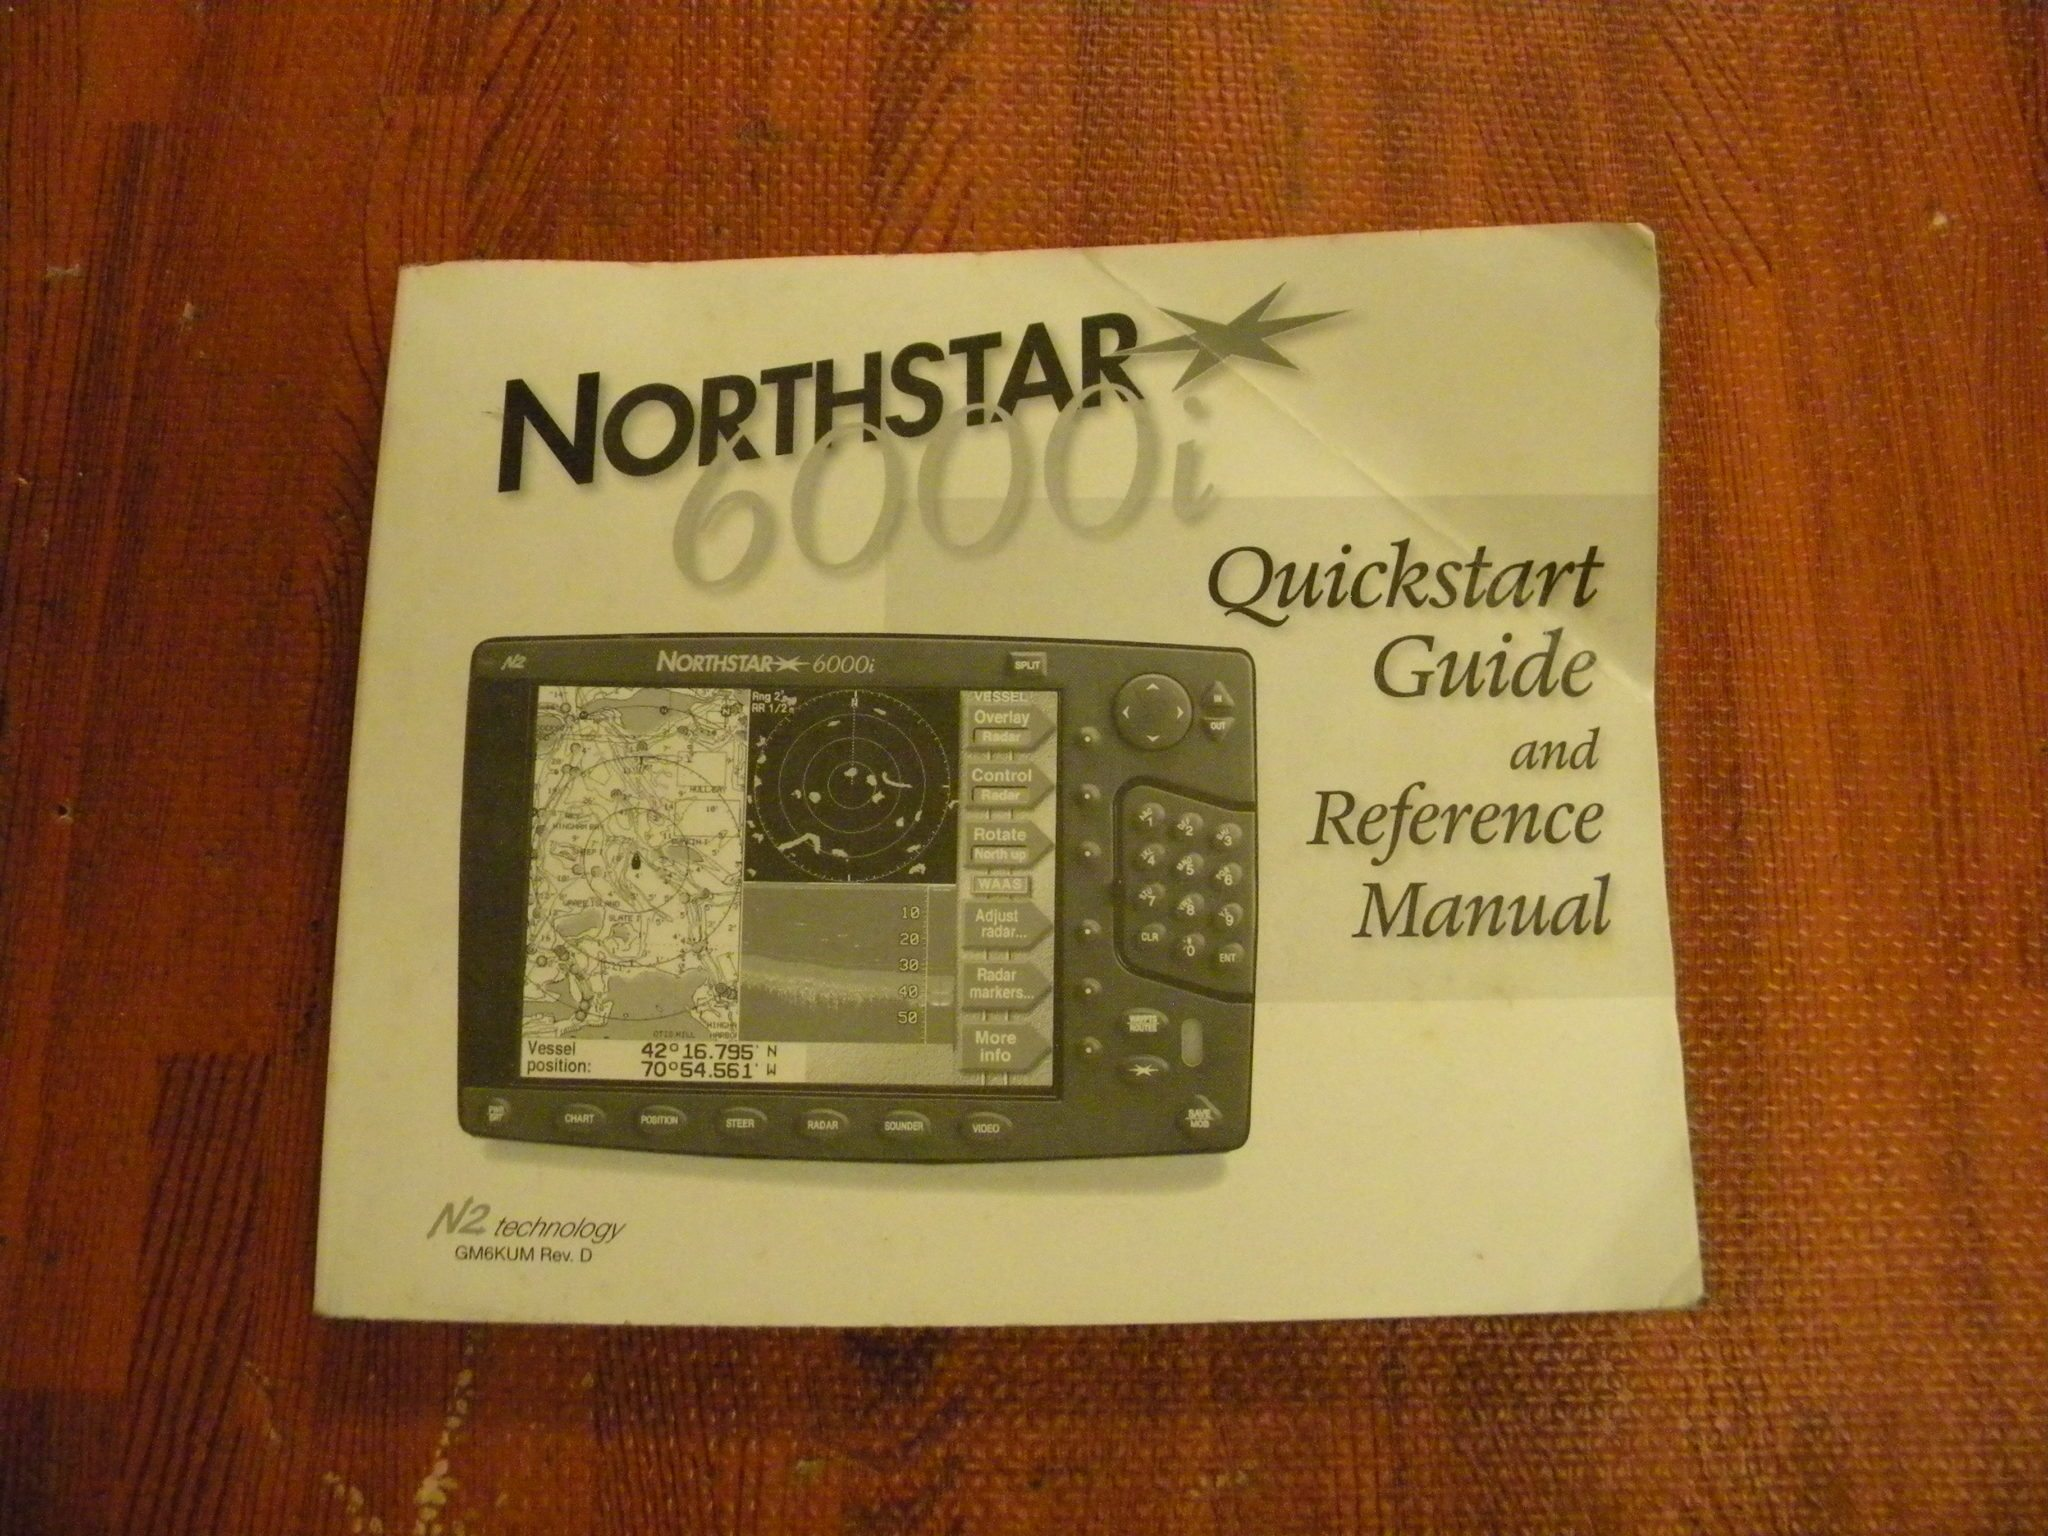 Northstar 6000i owners manual.